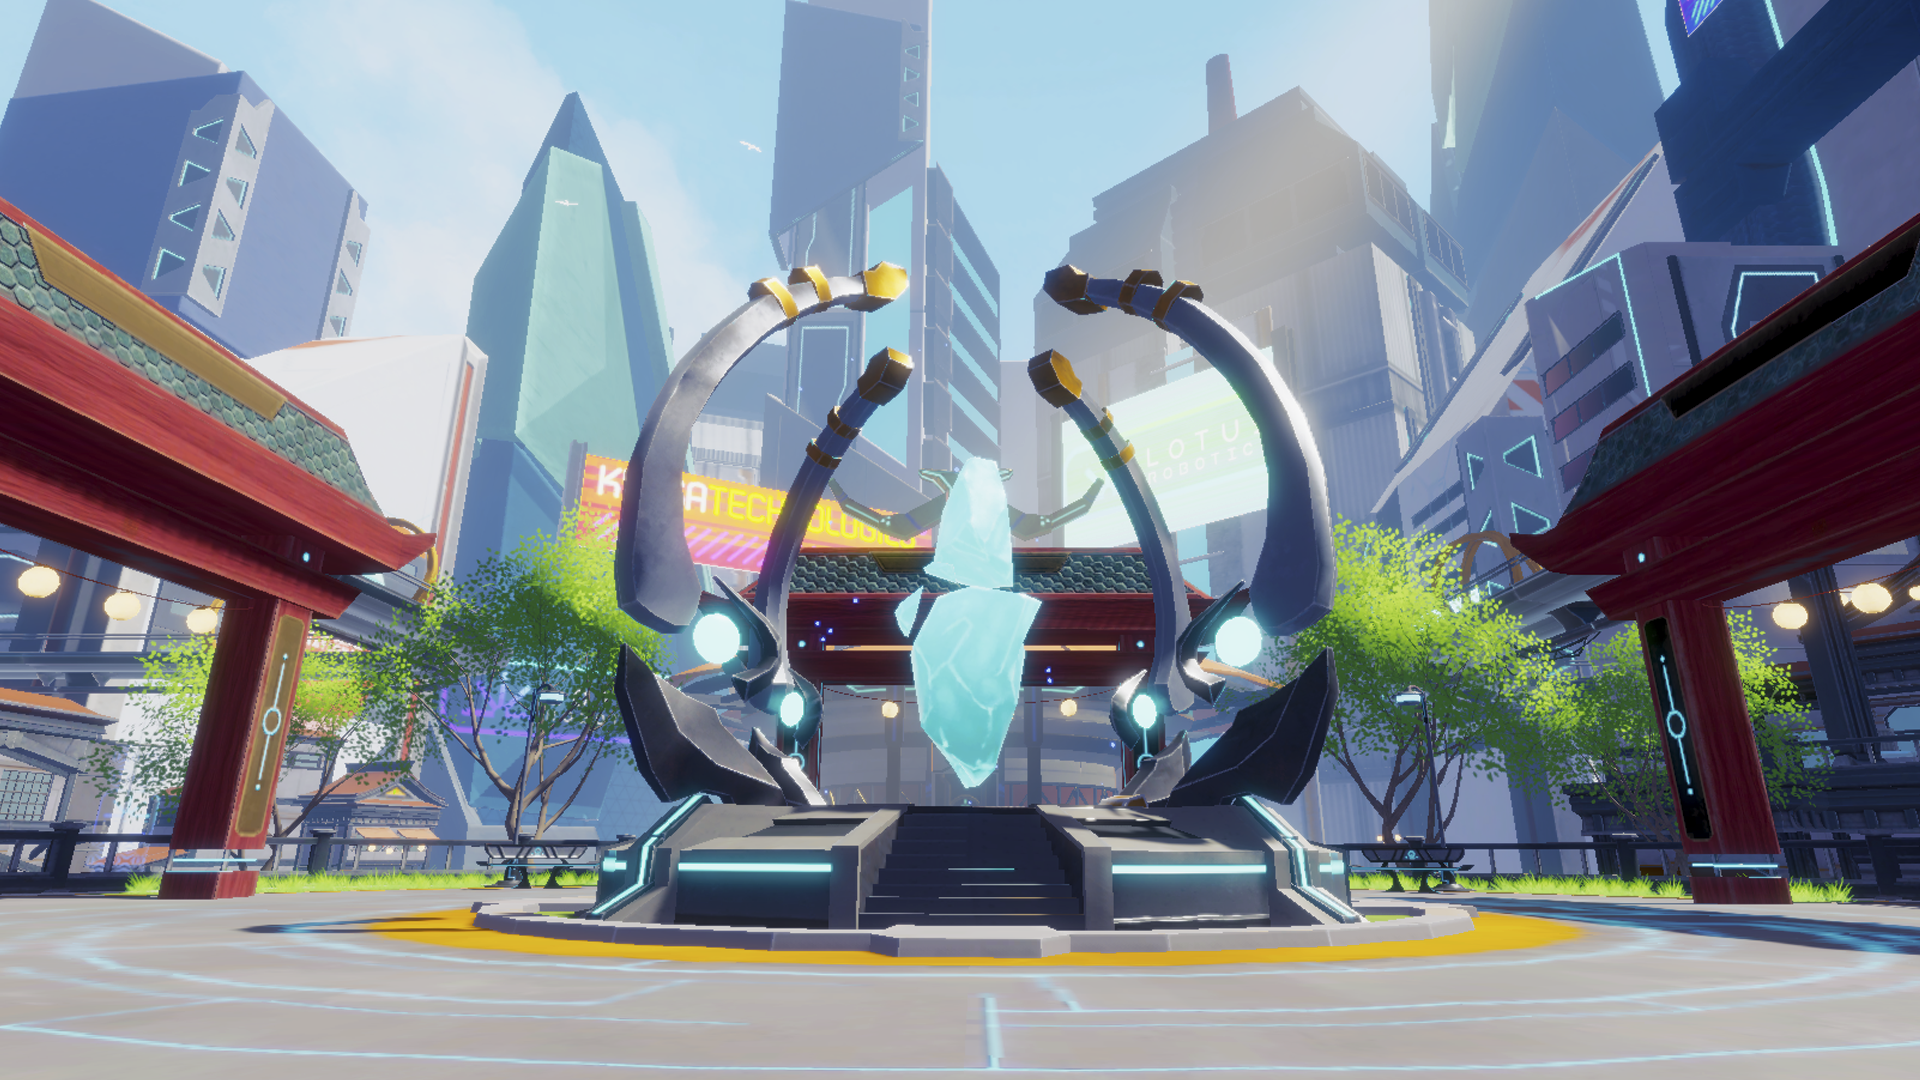 Gameplay screenshot for Zenith on PS VR